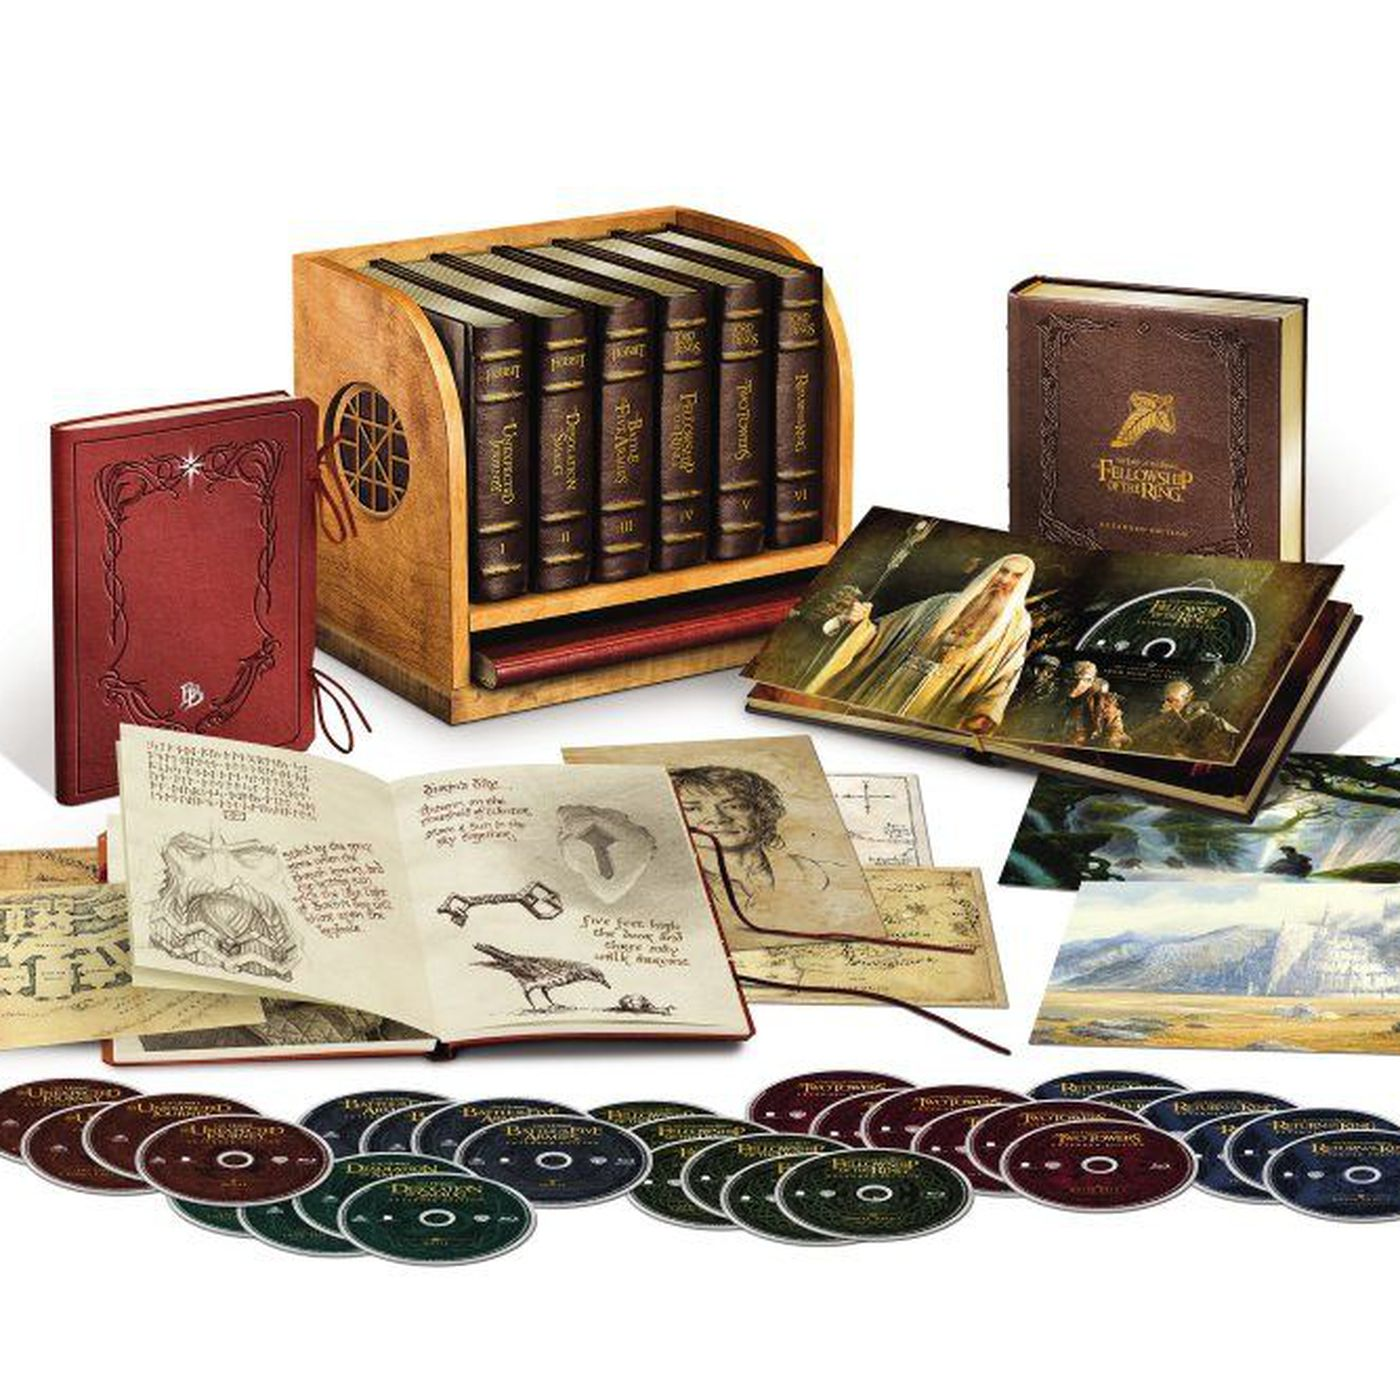 Who Is This 800 Lord Of The Rings And The Hobbit Boxset Meant For The Verge